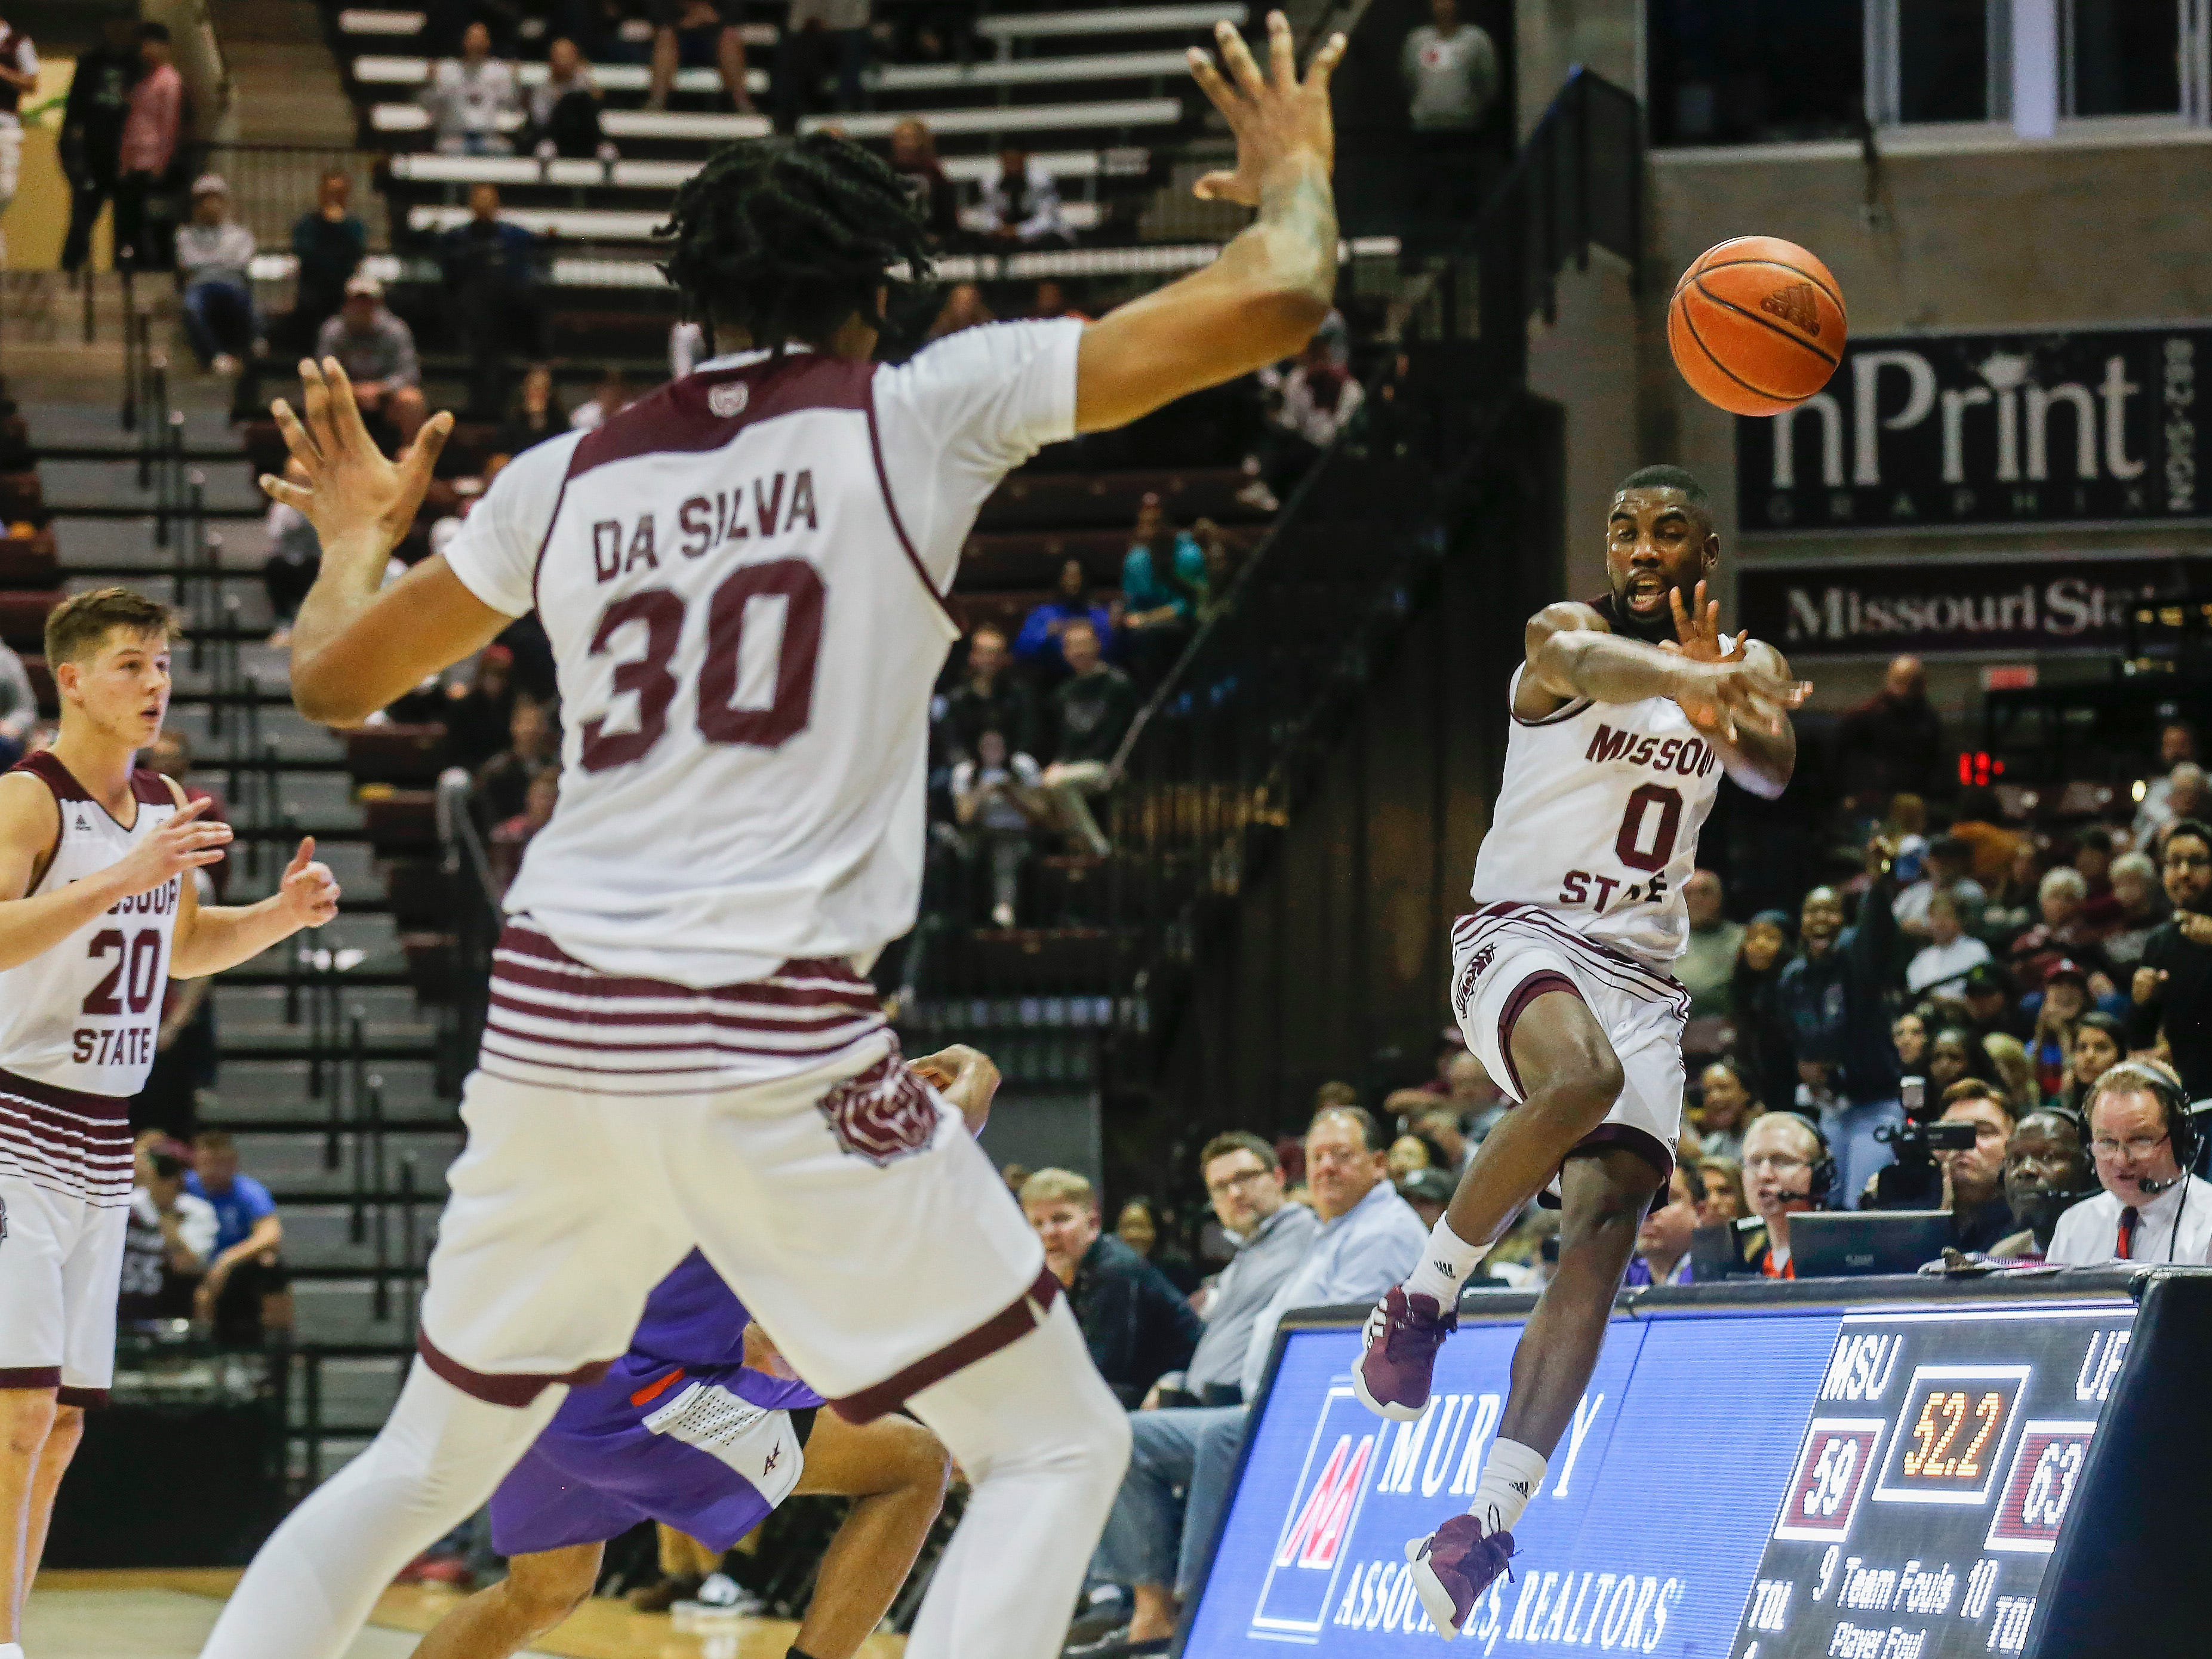 The Missouri State Bears fell to the Evansville Purple Aces 70-64 at JQH Arena on Wednesday, Jan. 16, 2019.